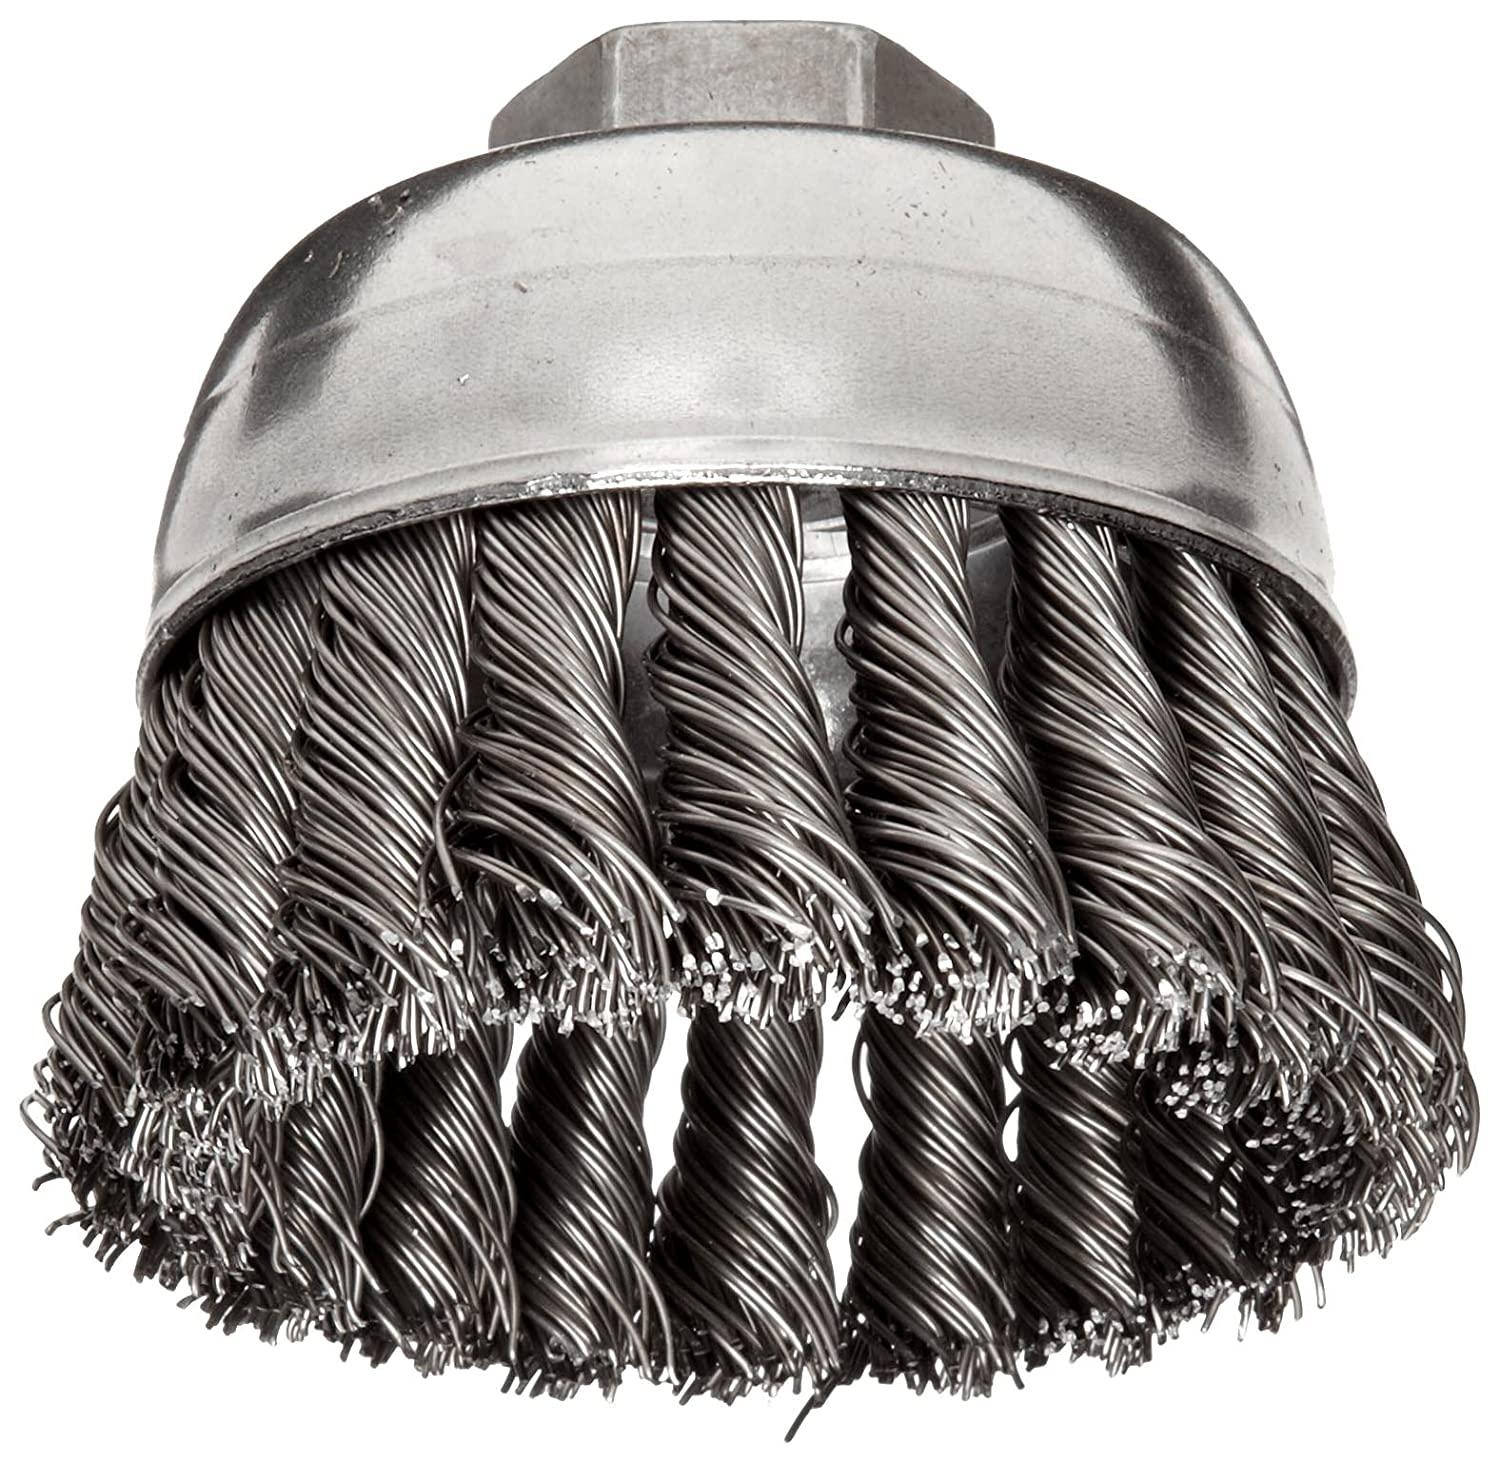 Weiler Wire Cup Brush Threaded Hole Steel Partial Twist Knotted Single Row 2 3 4 Diameter 0.02 Wire Diameter 5 8 11 Arbor 1 Bristle Length 14000 rpm Pack of 1